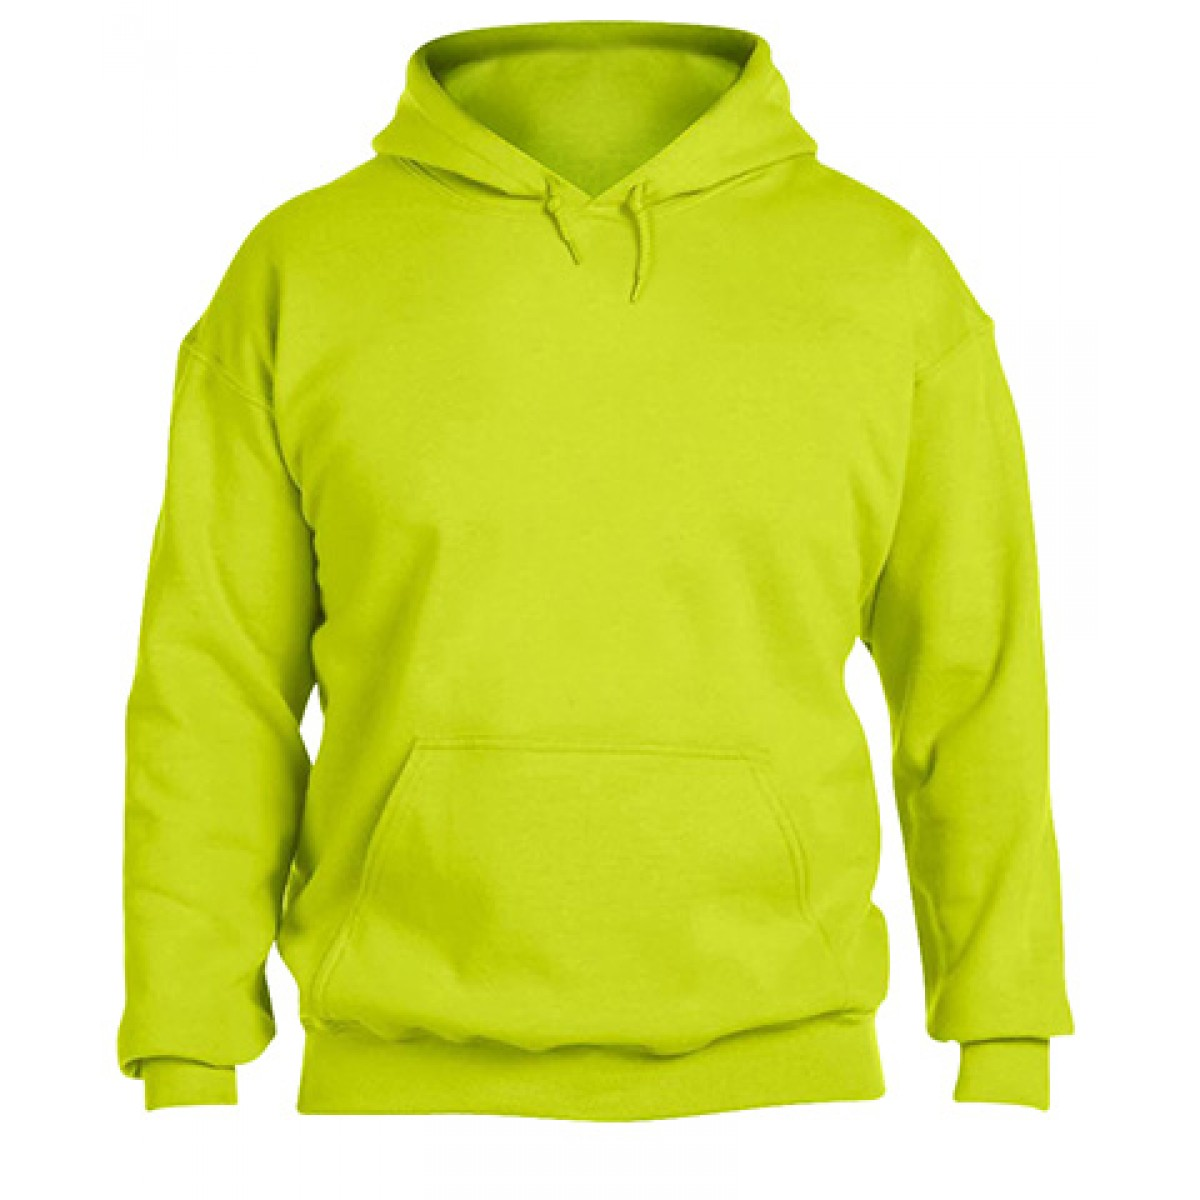 Hooded Sweatshirt 50/50 Heavy Blend-Safety Green-YL